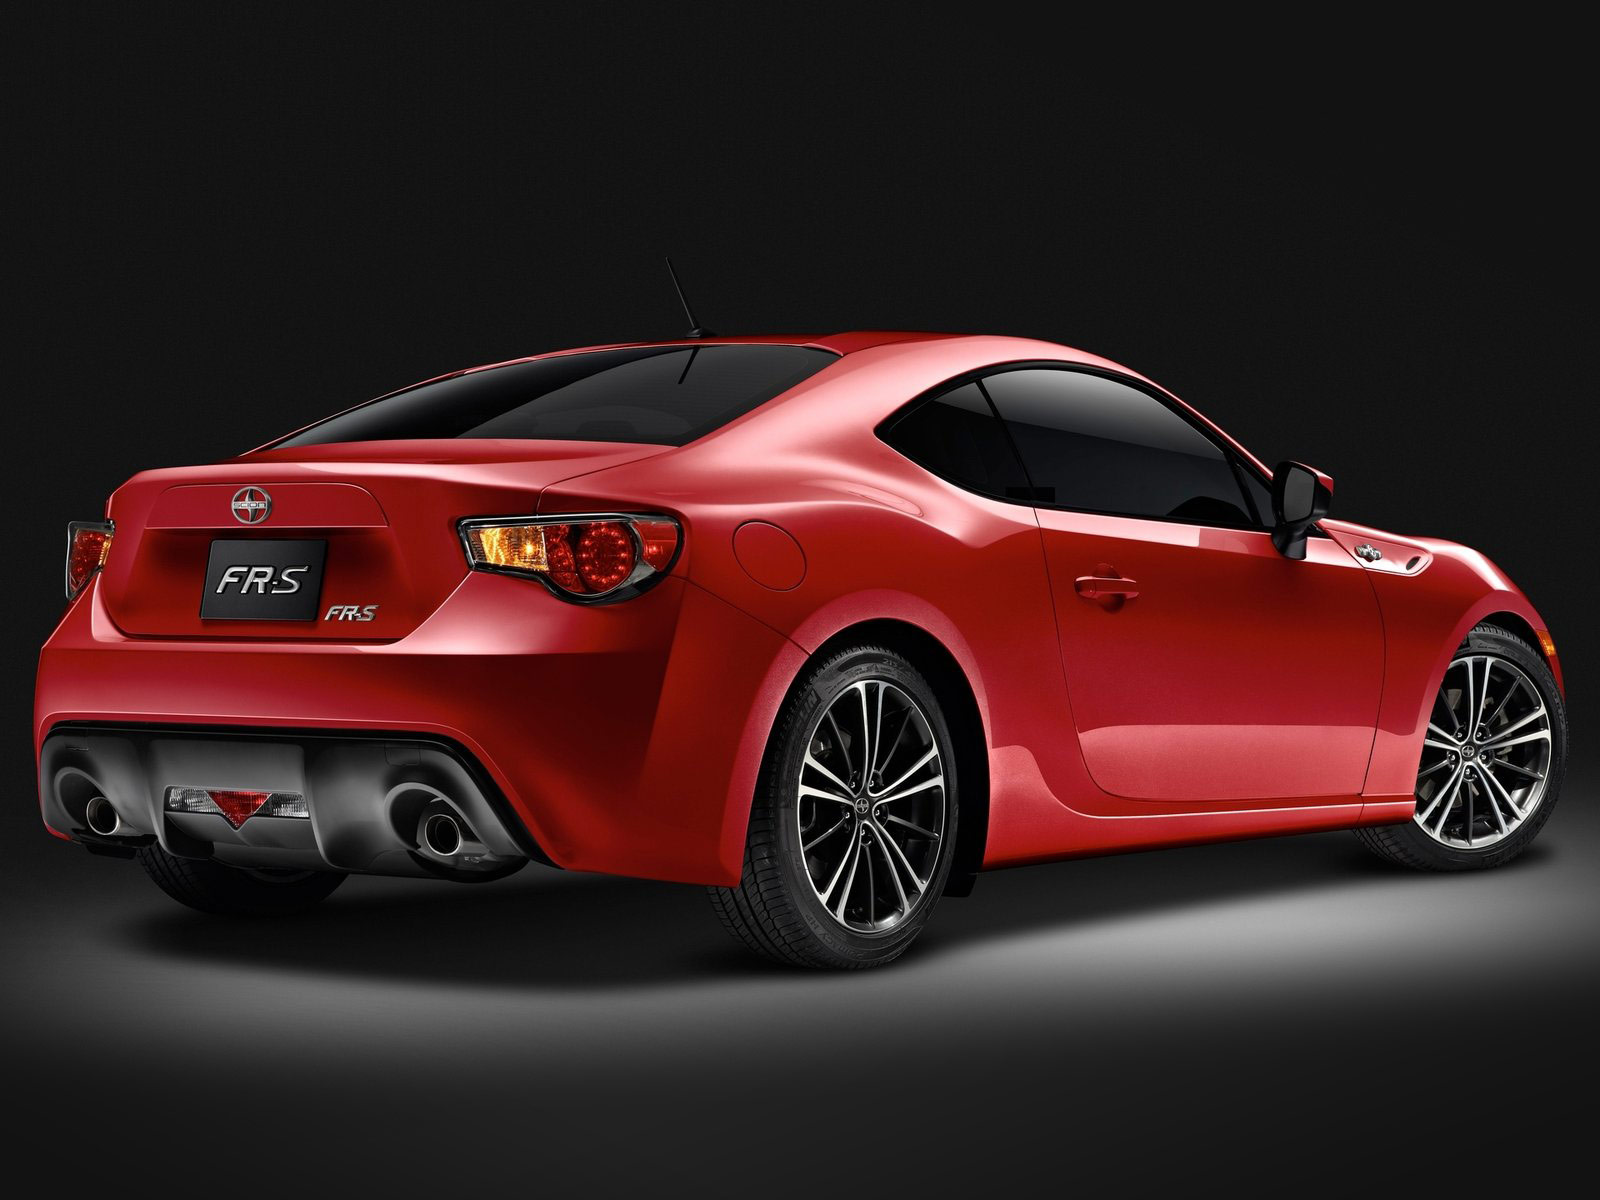 2013 scion fr s car desktop wallpaper. Black Bedroom Furniture Sets. Home Design Ideas